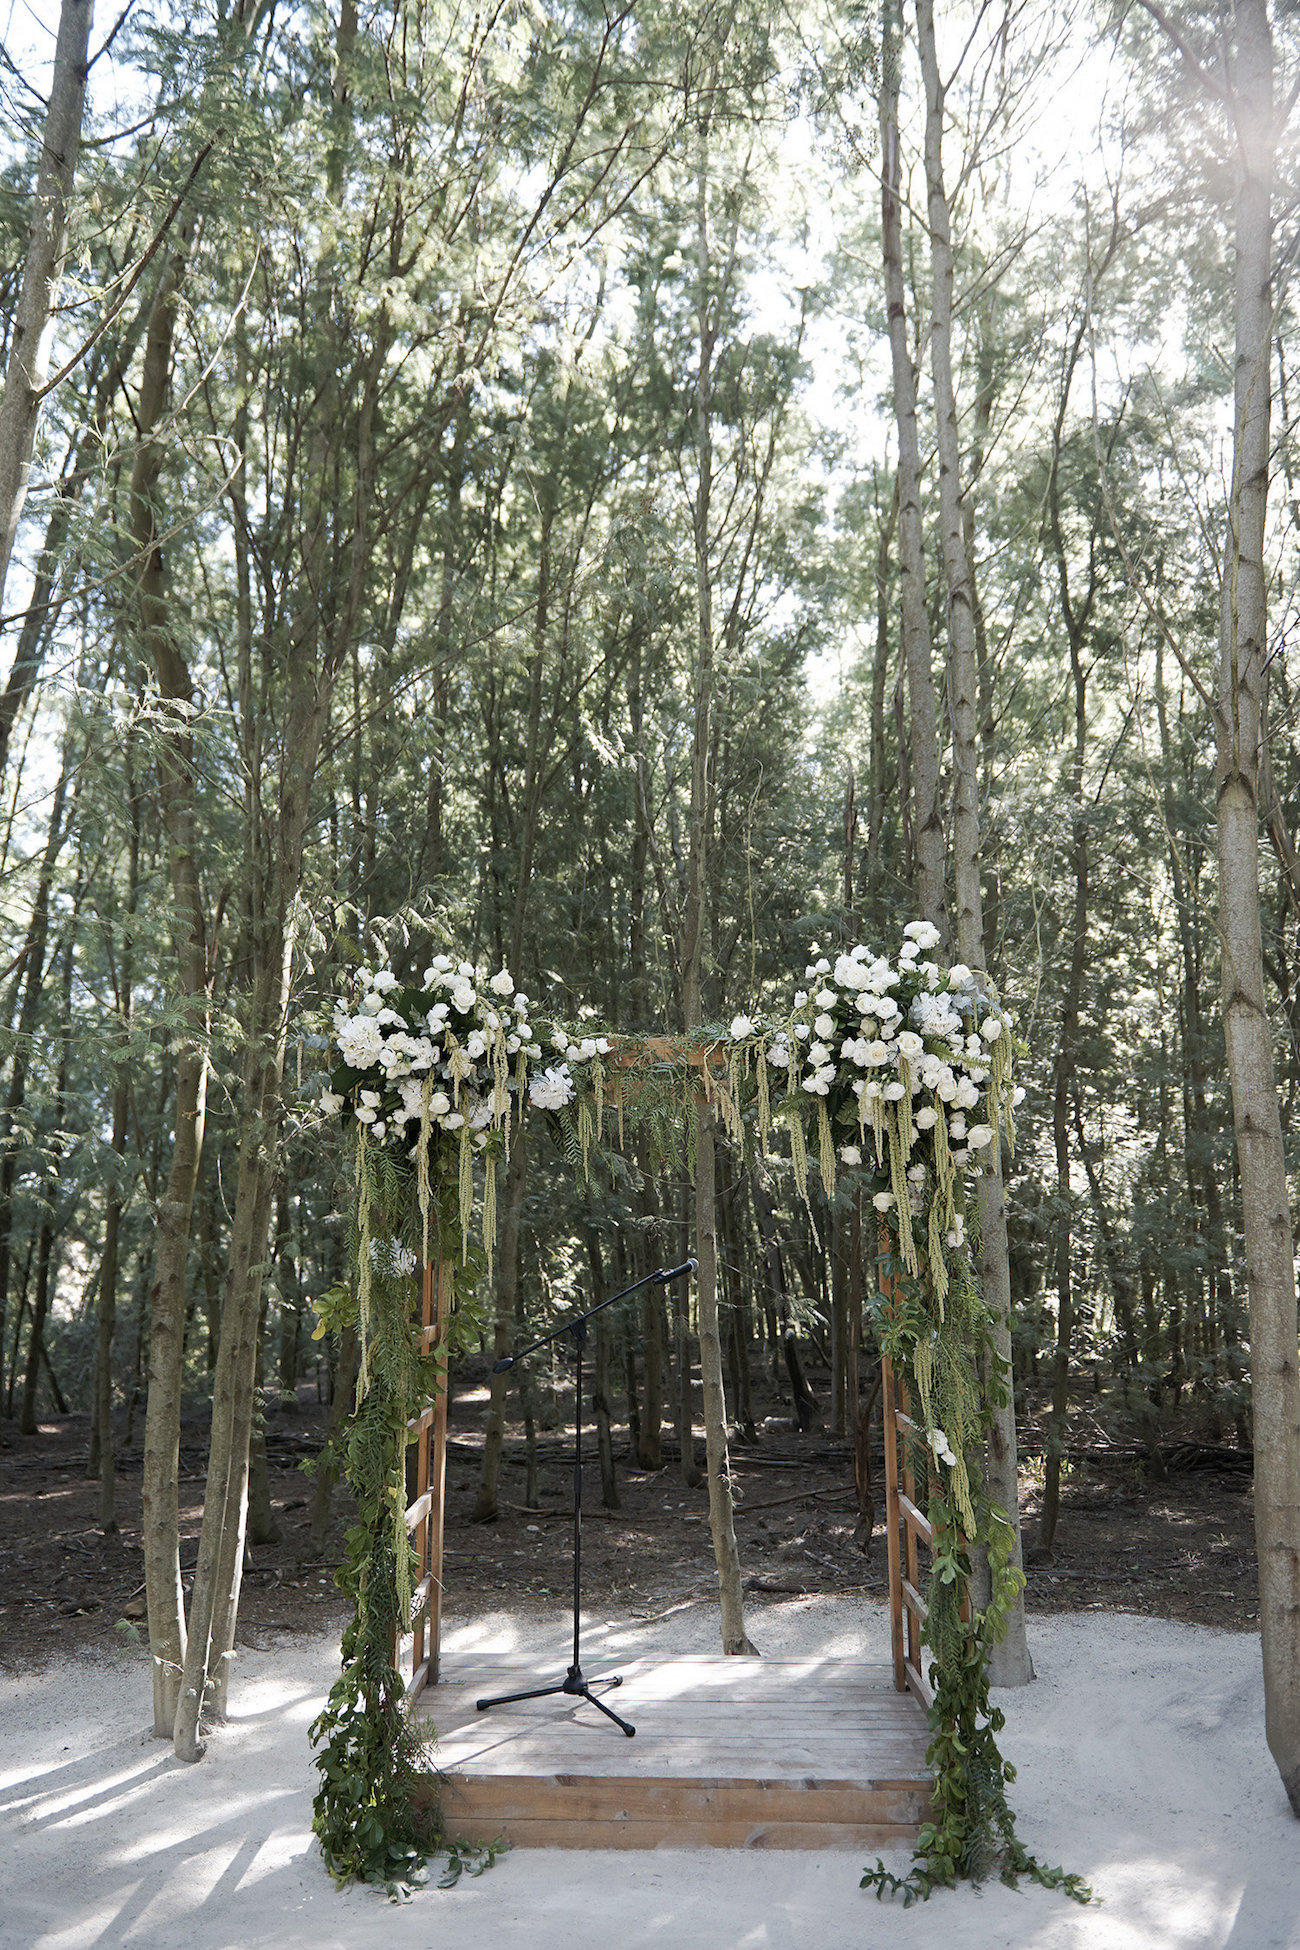 Wooden Floral Ceremony Arch | Image: Knit Together Photography